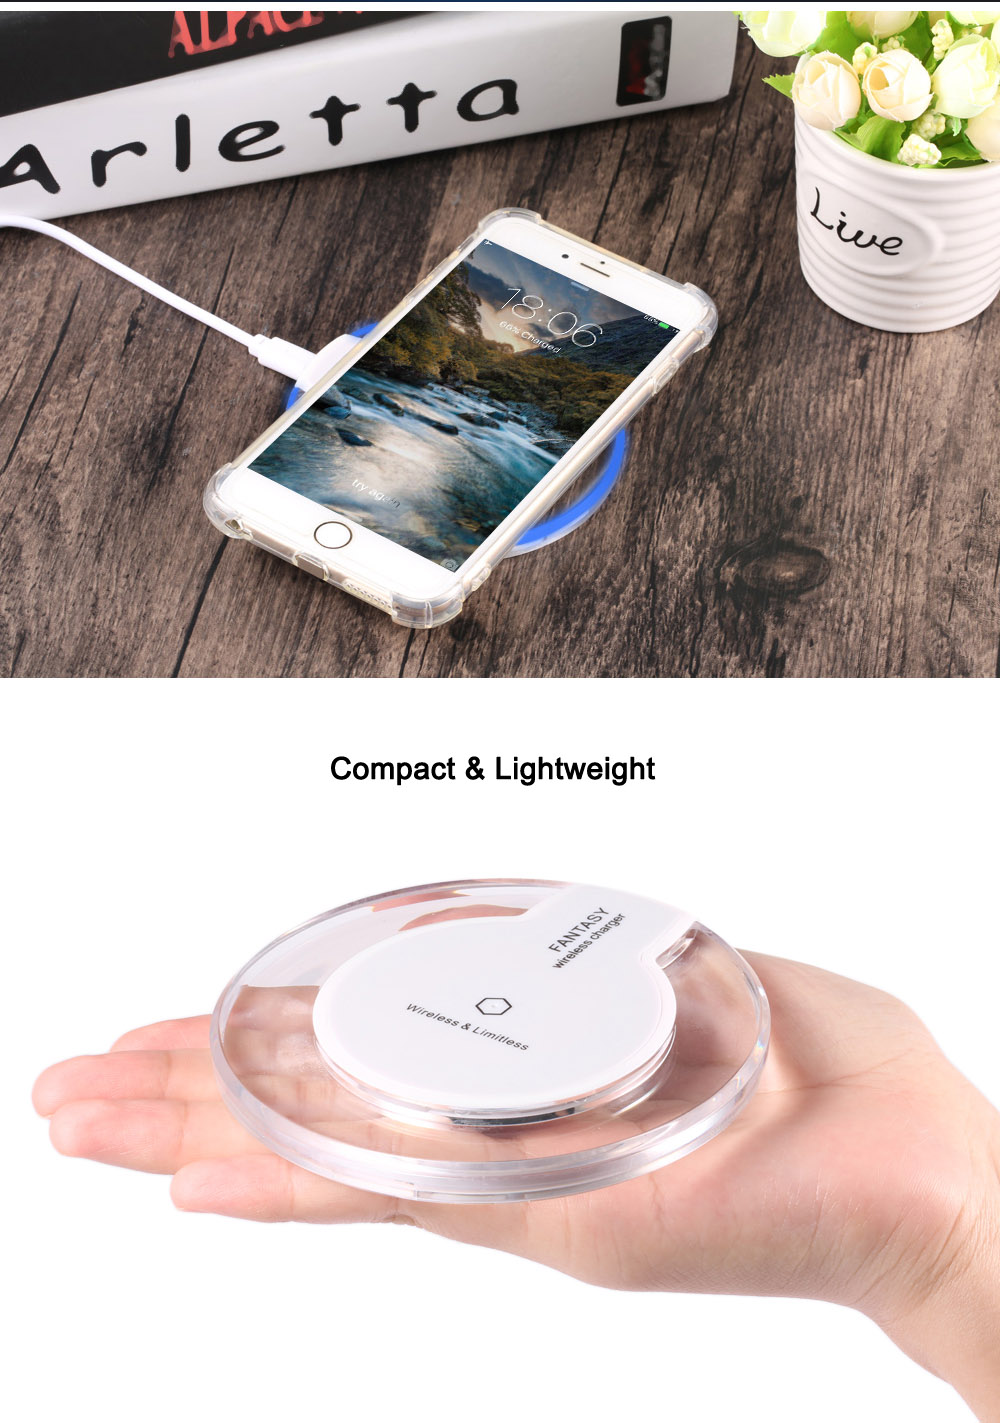 Crystal Clear Qi Wireless Charger + Charging Receiver + Transparent Protection Case for iPhone 6 Plus / 6S Plus